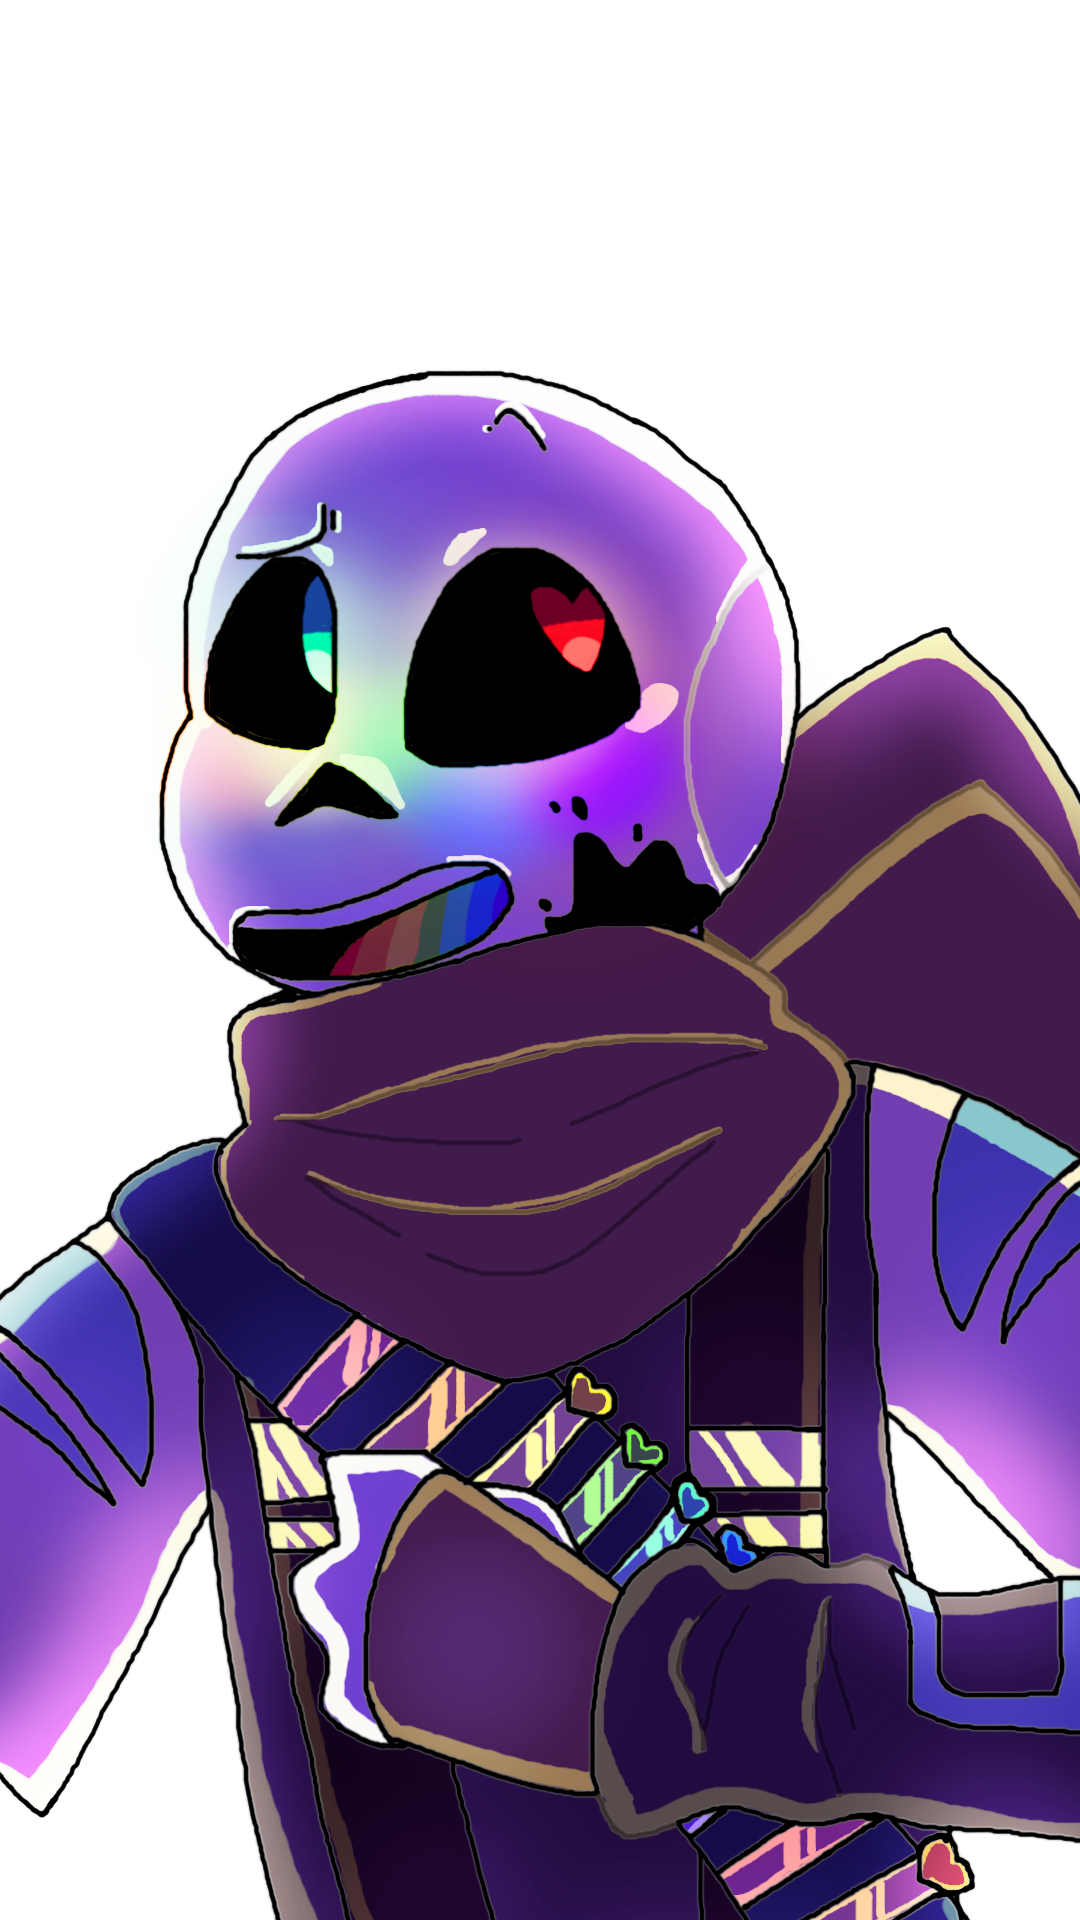 20 Games Like Undertale // ONE37pm